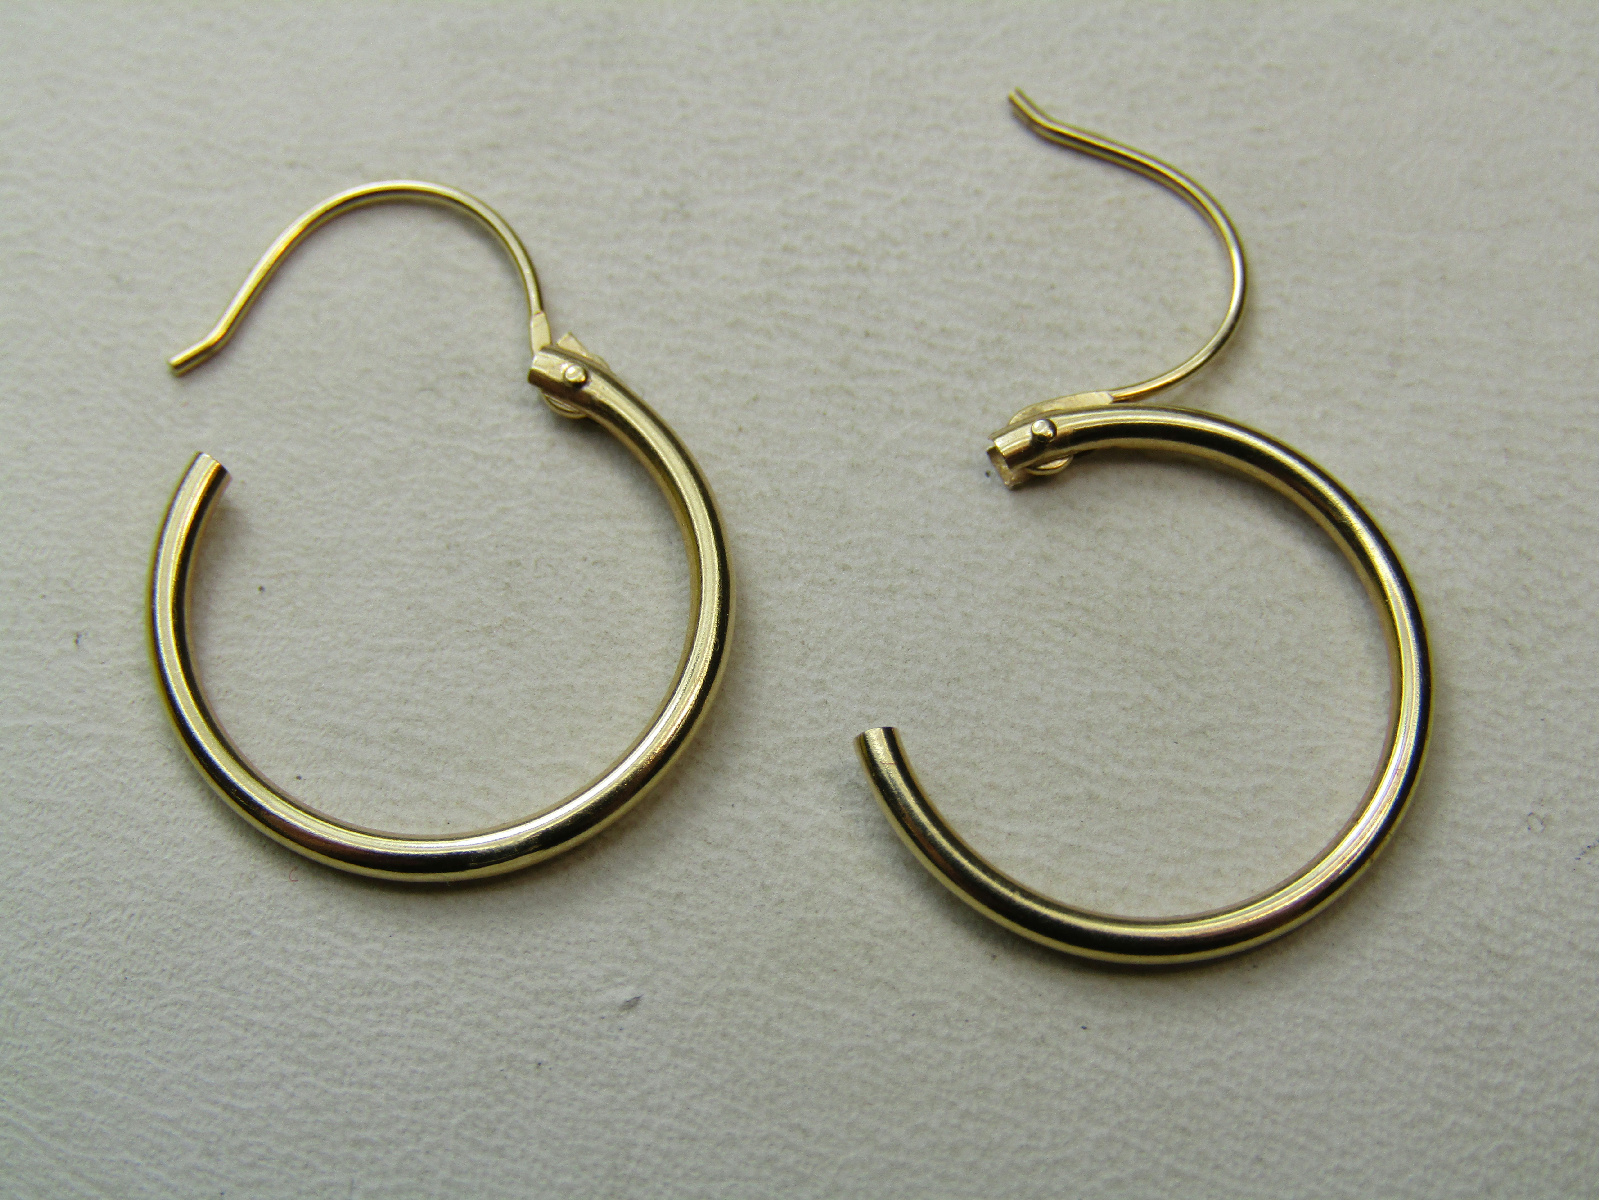 14k yellow gold jewelry continuous hoop earrings thin